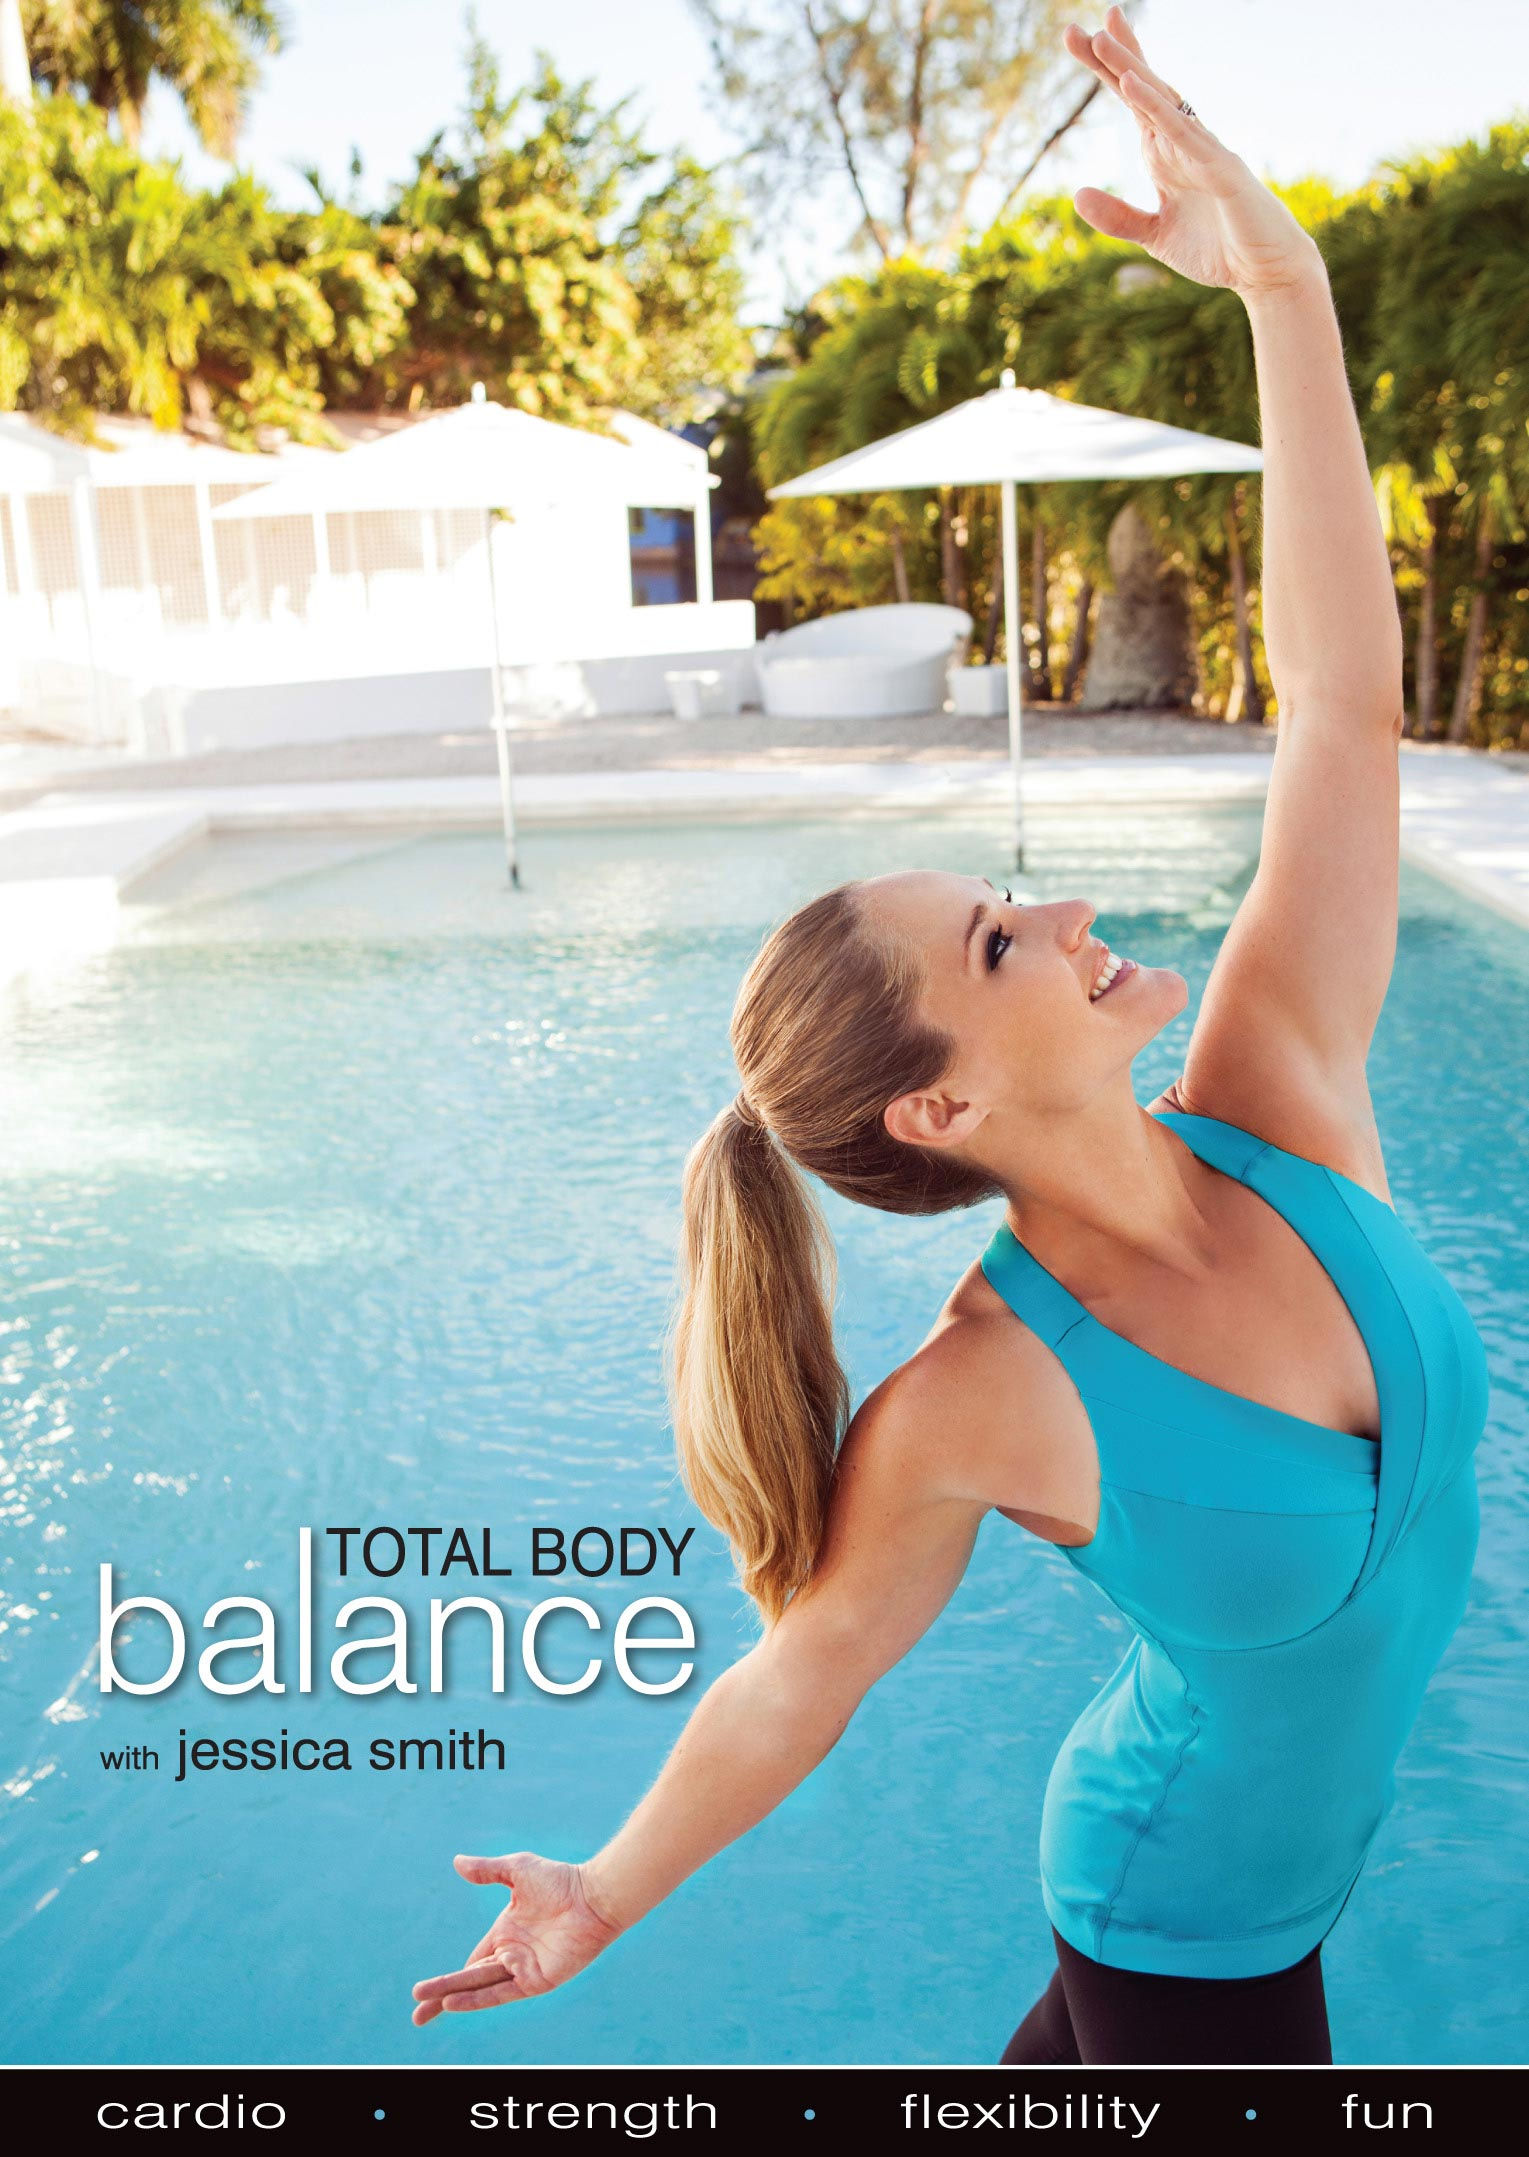 Jessica Smith: Total Body Balance